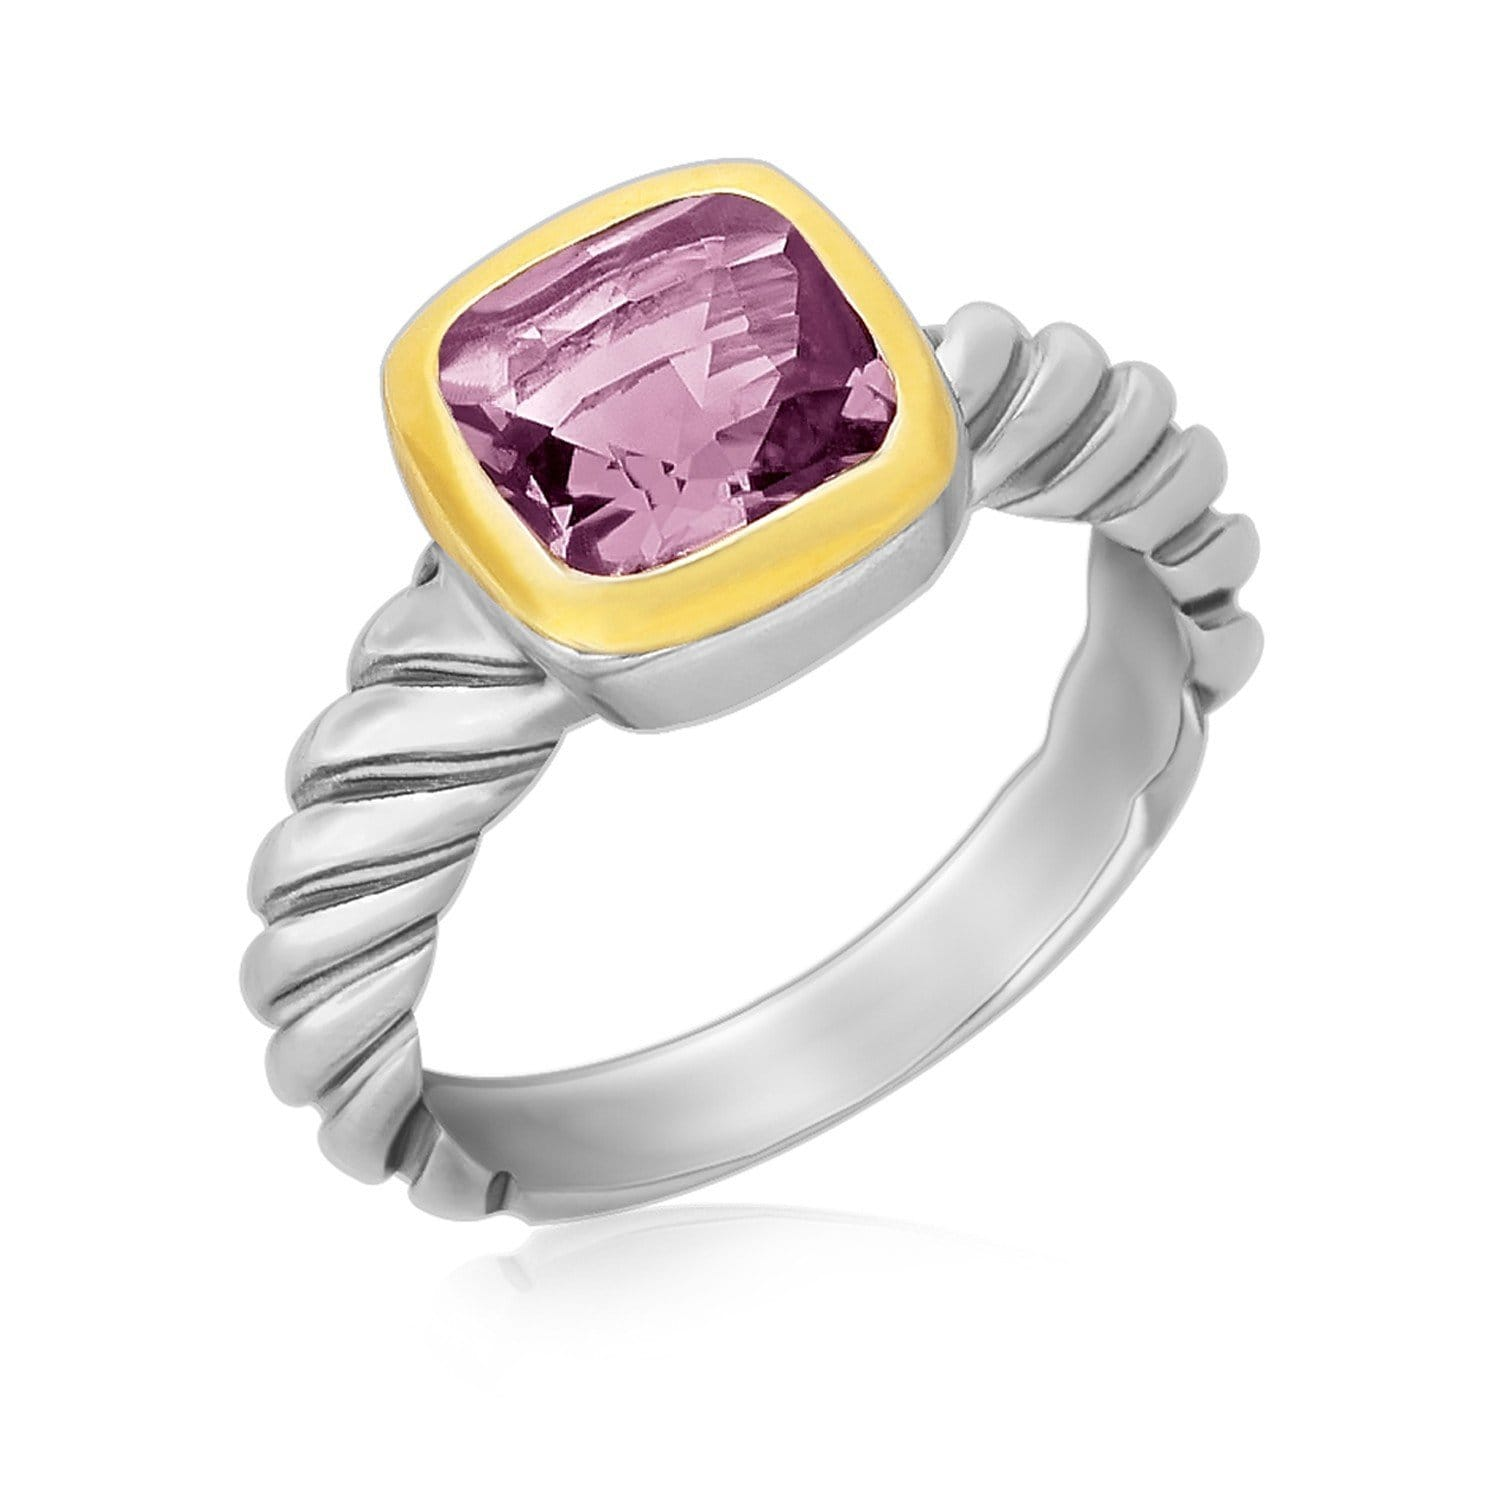 18K Yellow gold and Sterling Silver Cable Shank Ring with a Cushion Amethyst Size 8